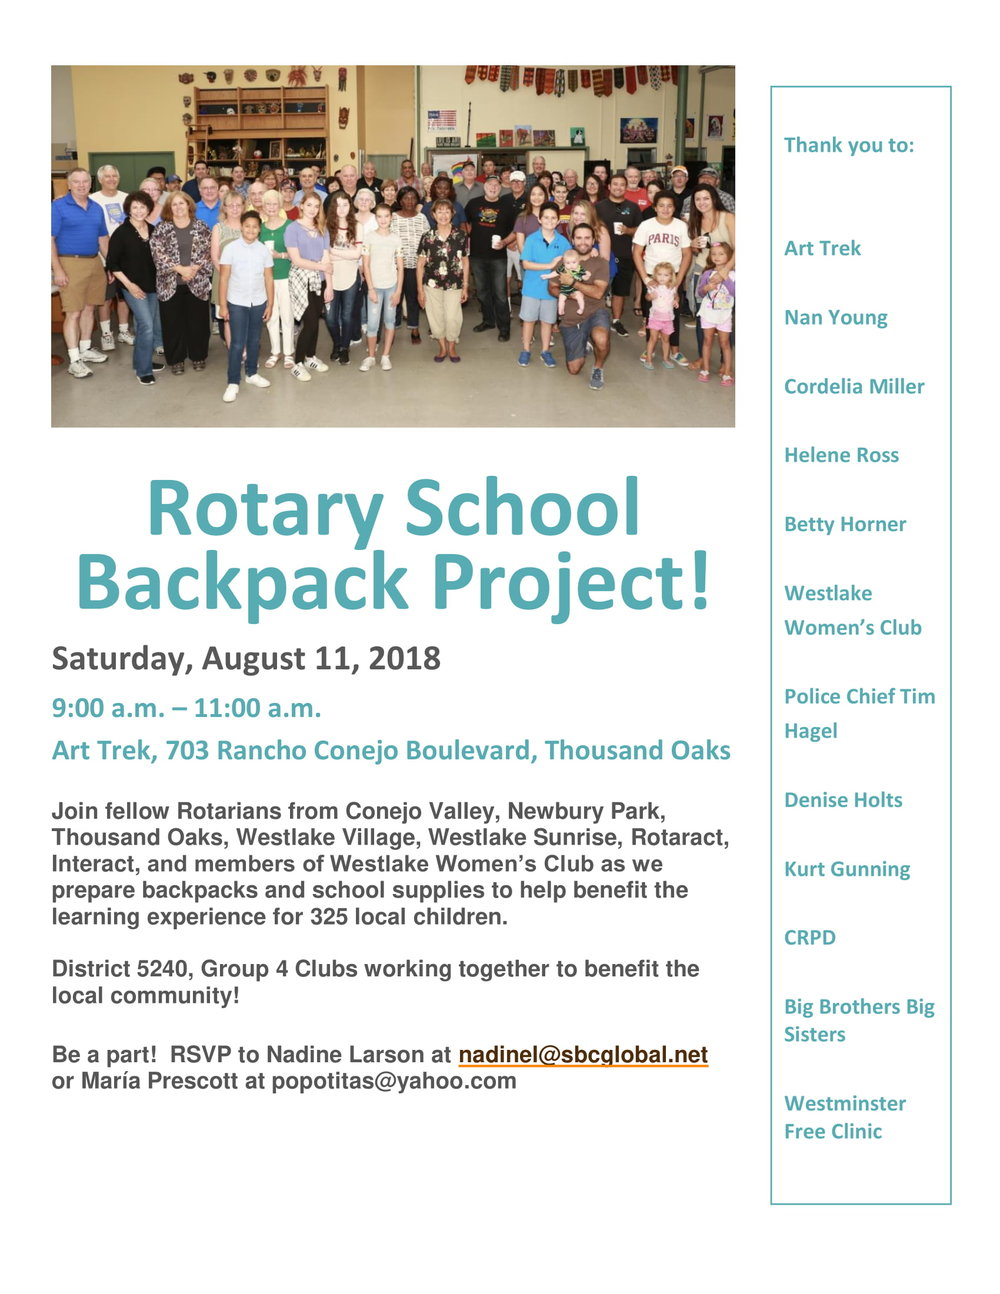 Rotary School Backpack Project Flyer2-1.jpg